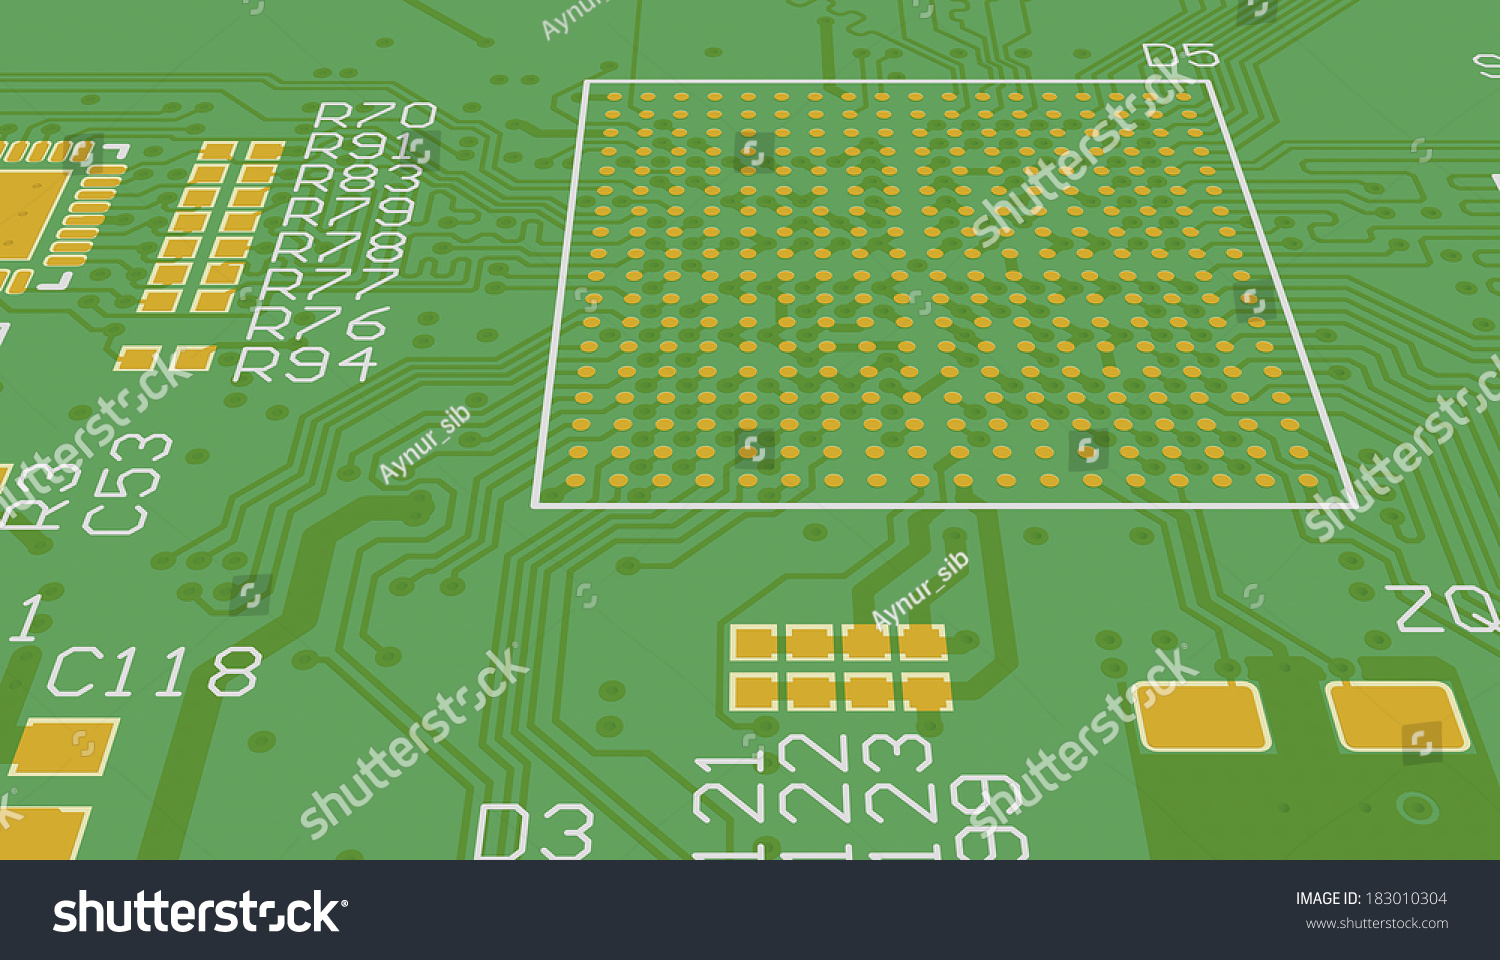 Pcb 3 D Device Design Wiring Schemeprinted Stock Illustration Board 3d Circuit Cad Designed For Computer Production Manufacturing